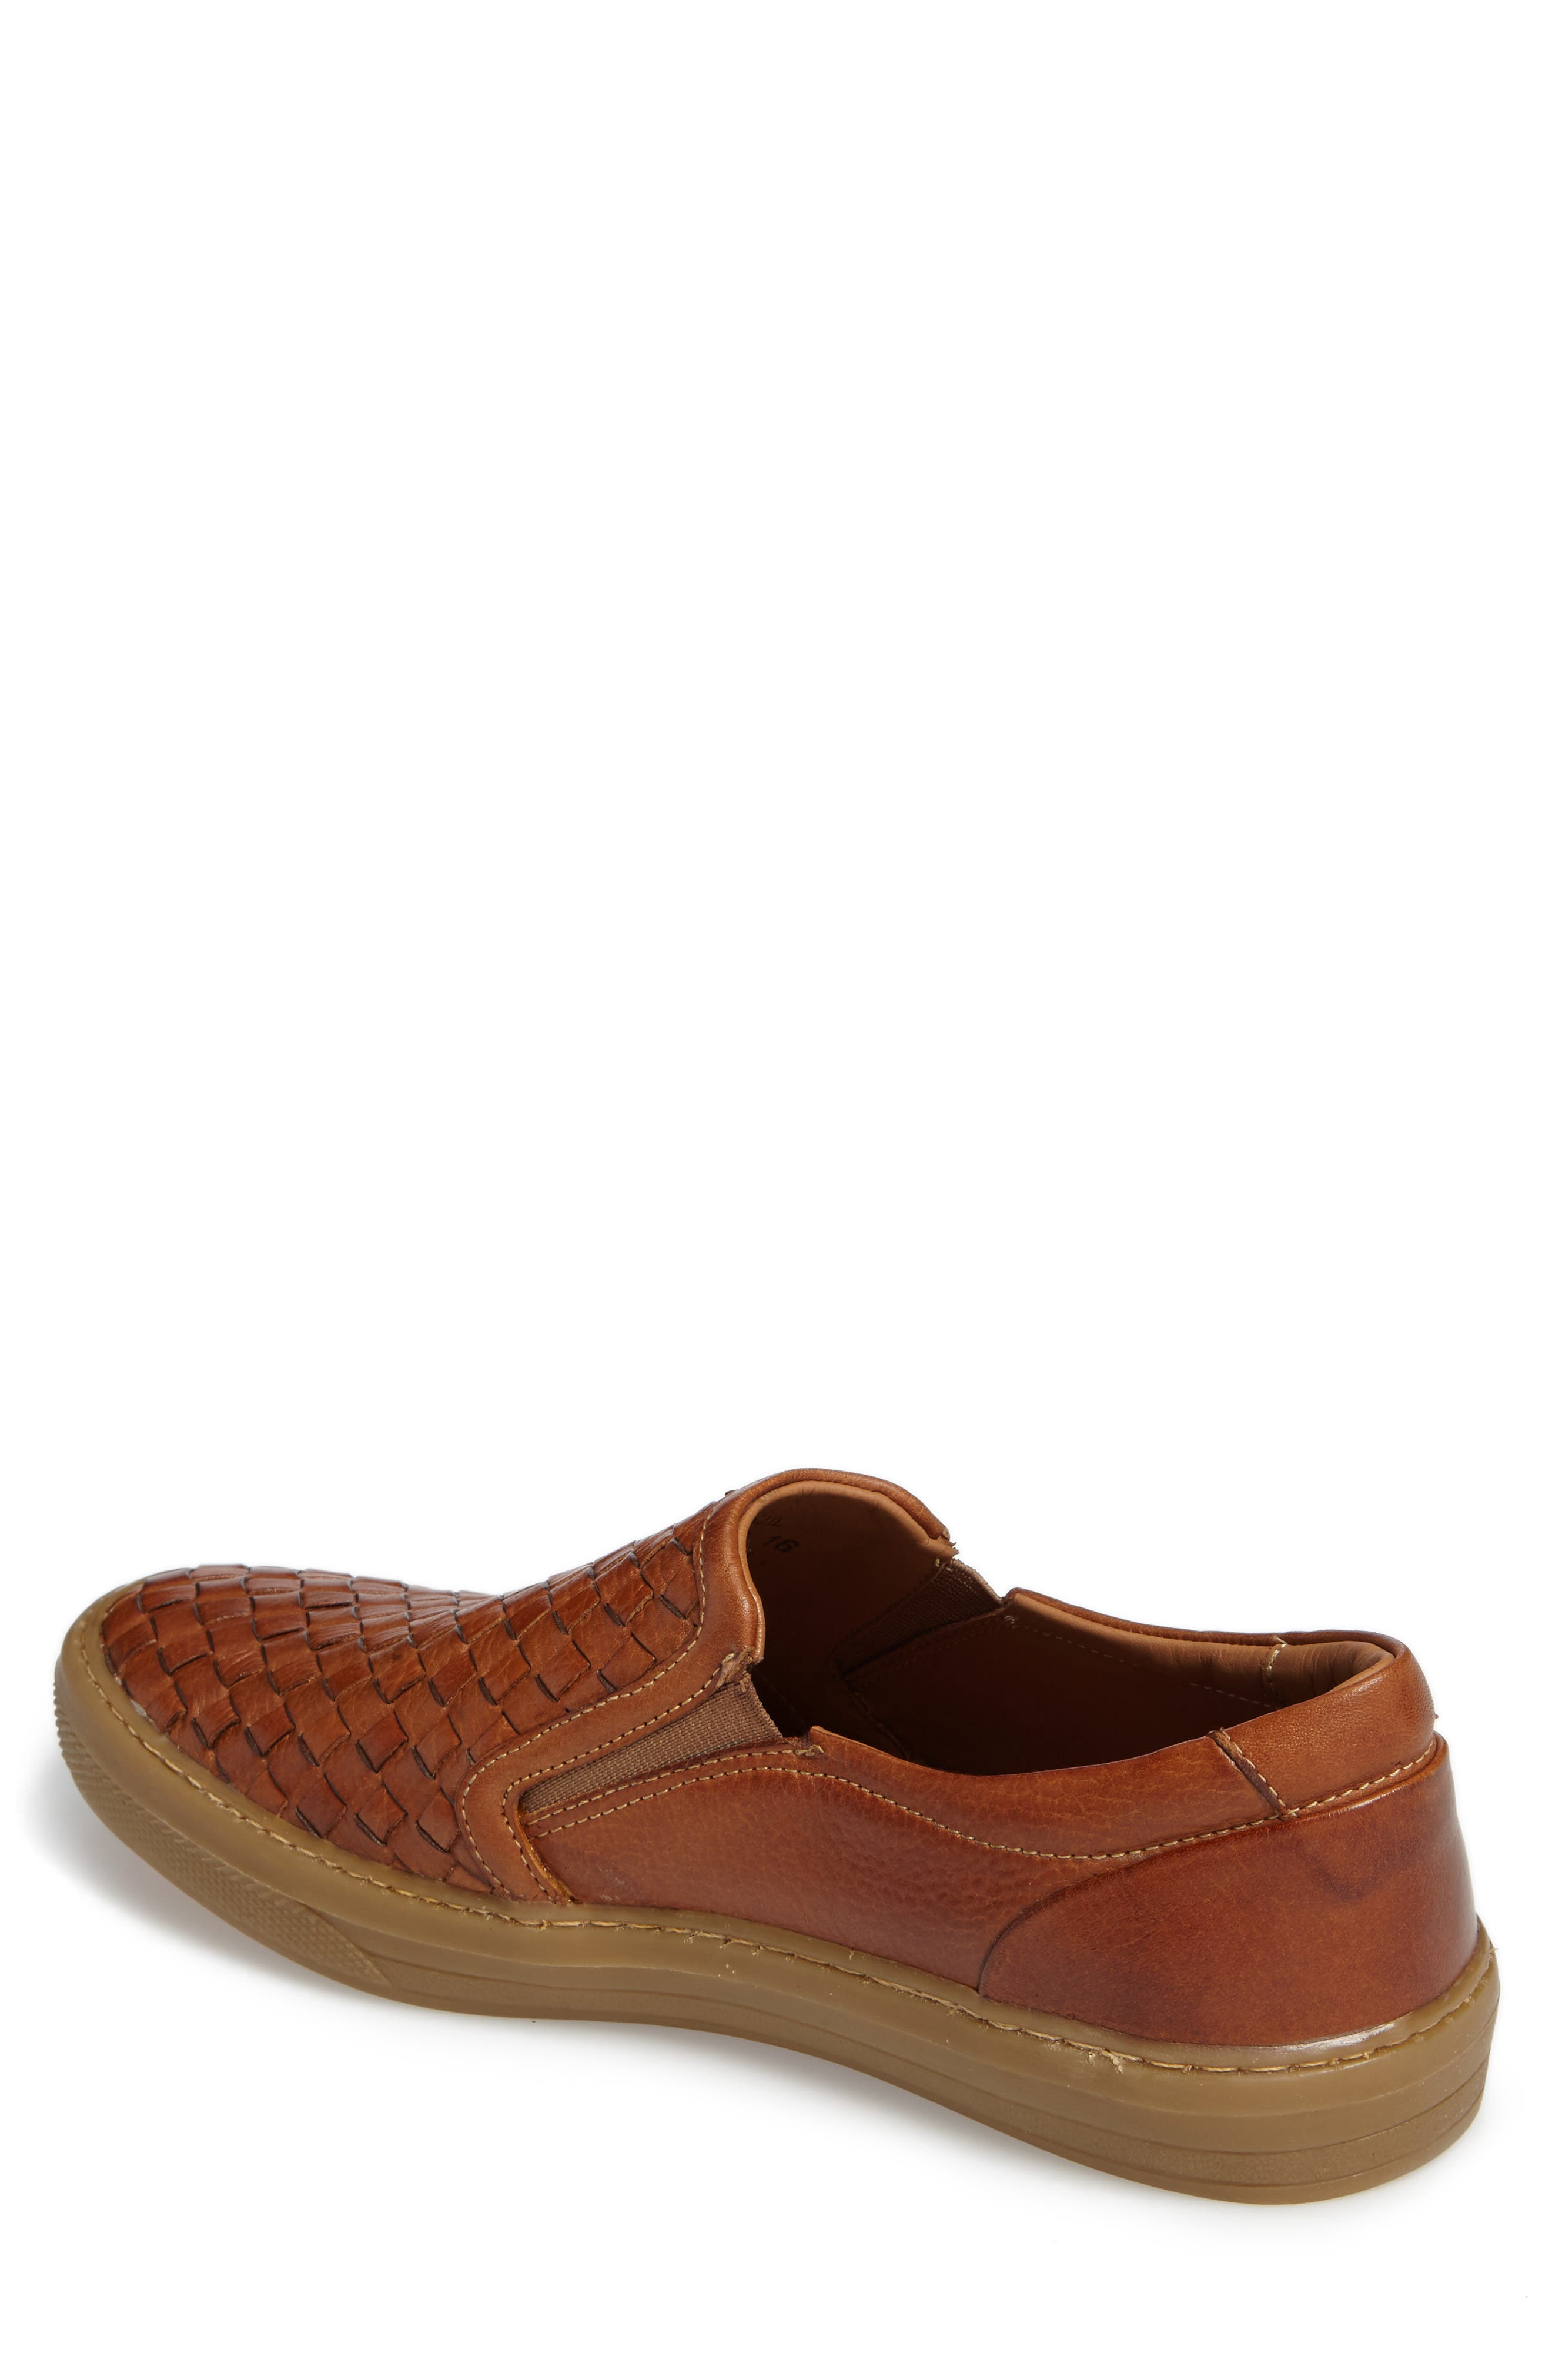 Bastos Woven Slip-On,                             Alternate thumbnail 2, color,                             Cognac Leather